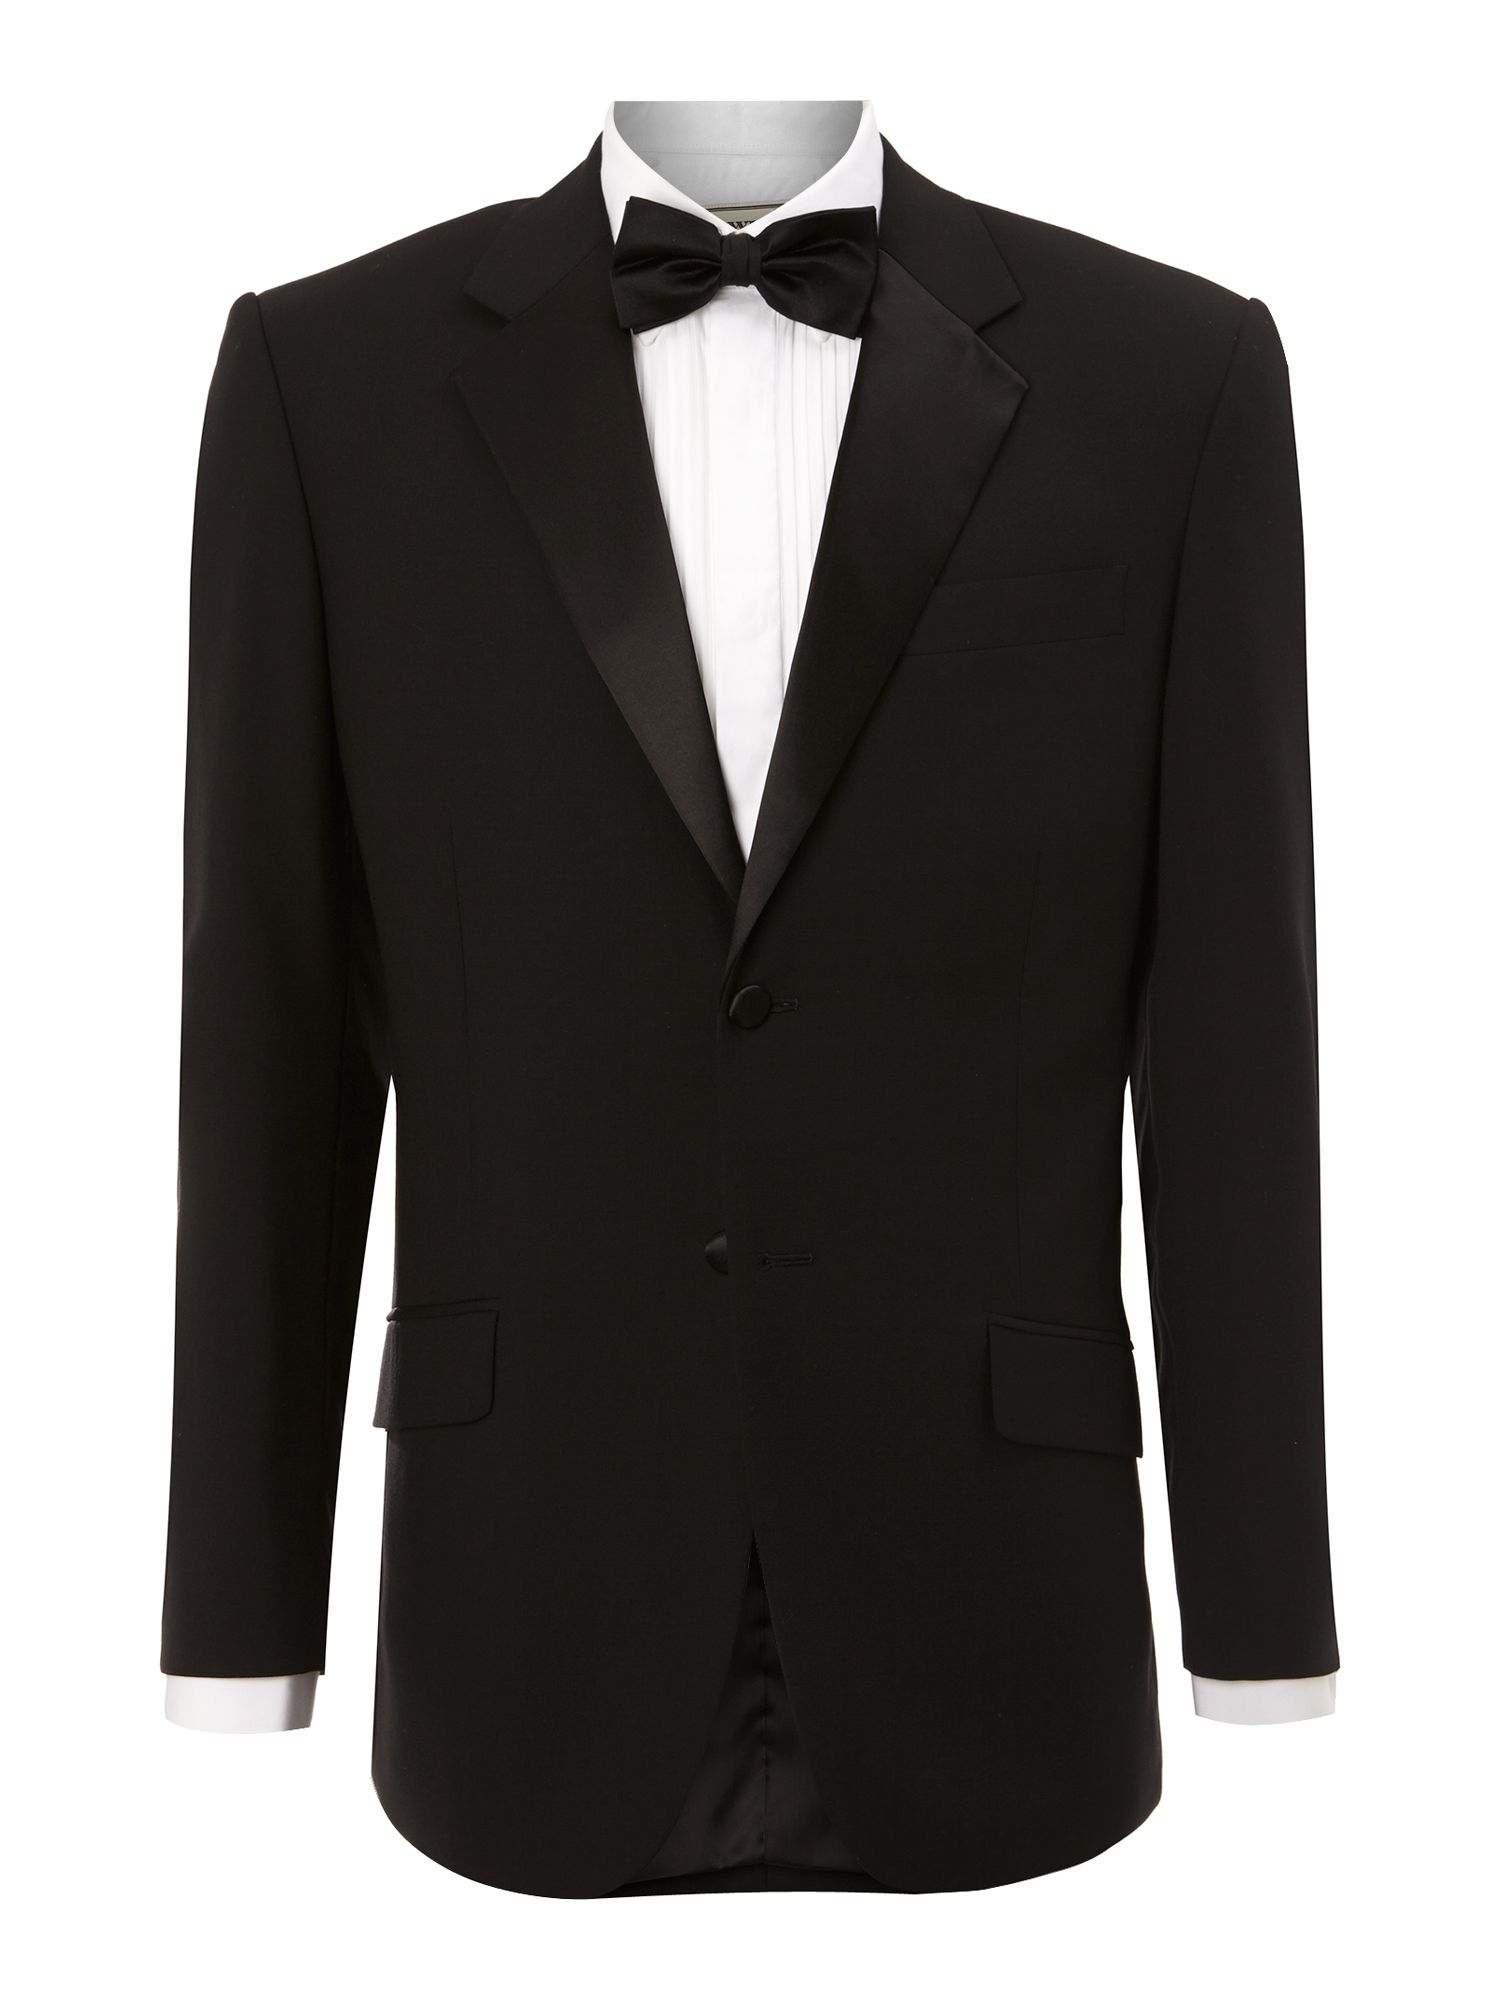 Powell tuxedo jacket with satin collar